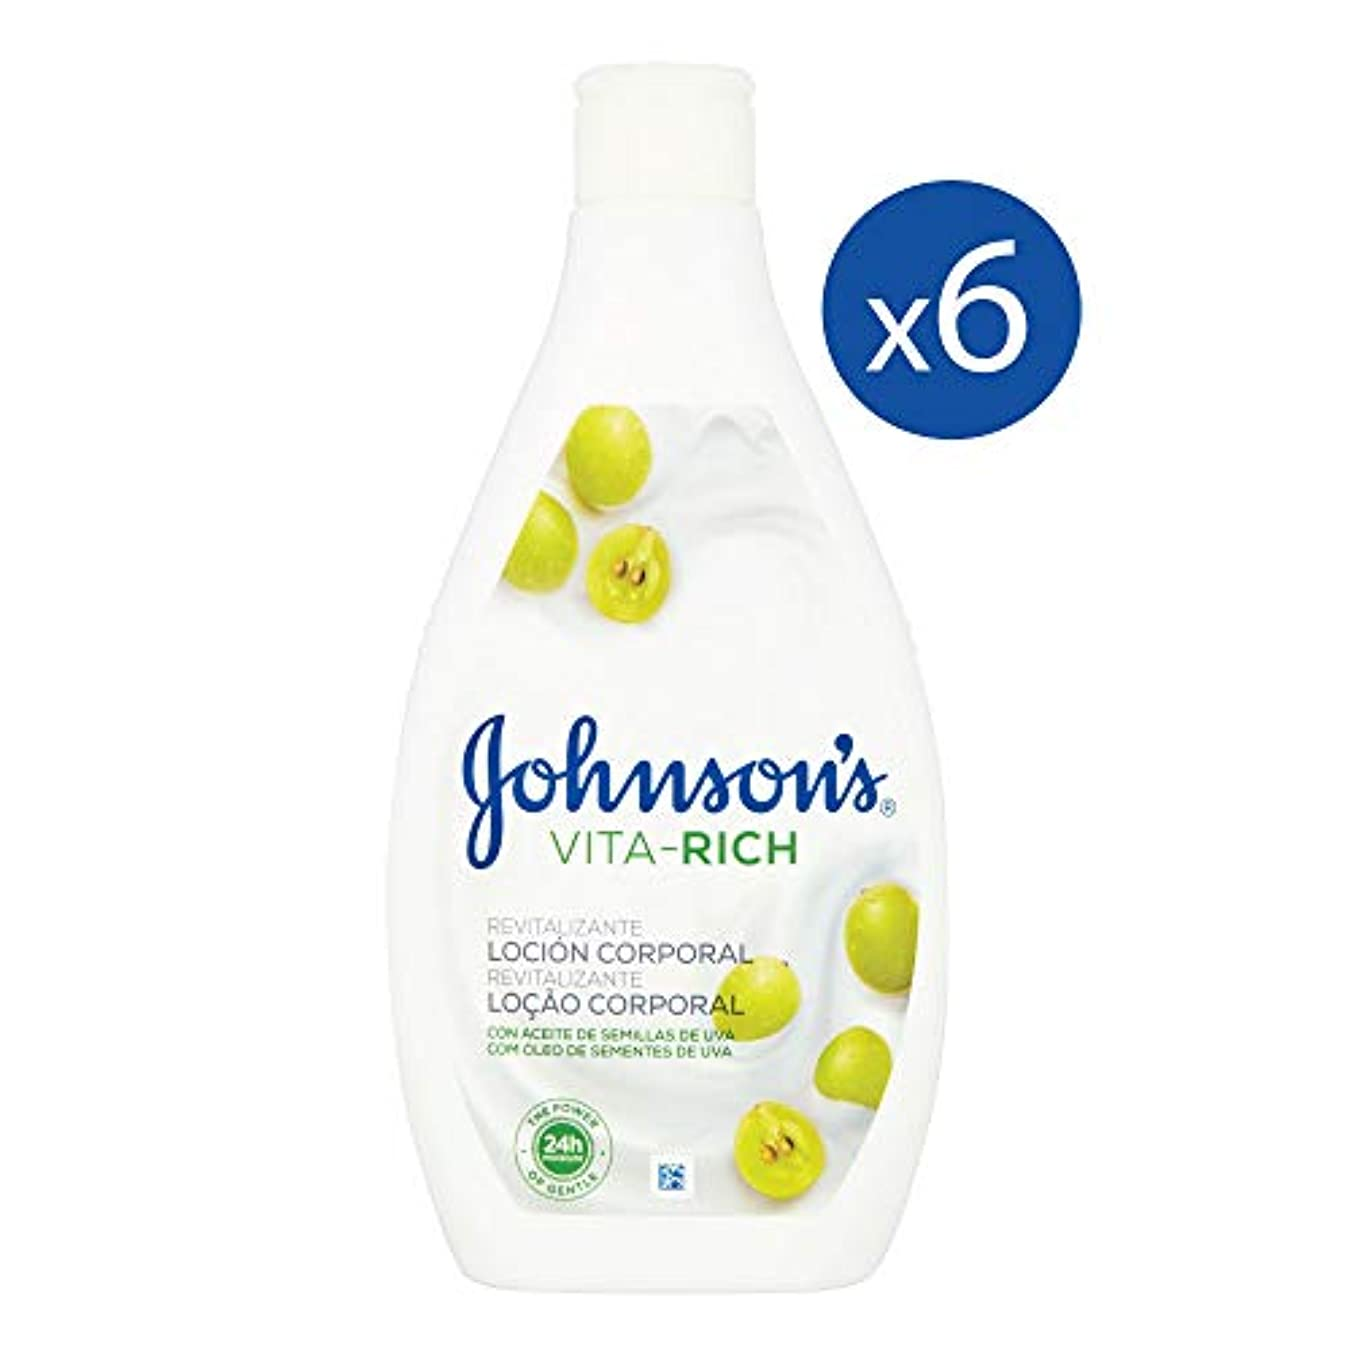 Johnson's VitaリッチリバイタリザンテUvas Body Lotion、400 ml